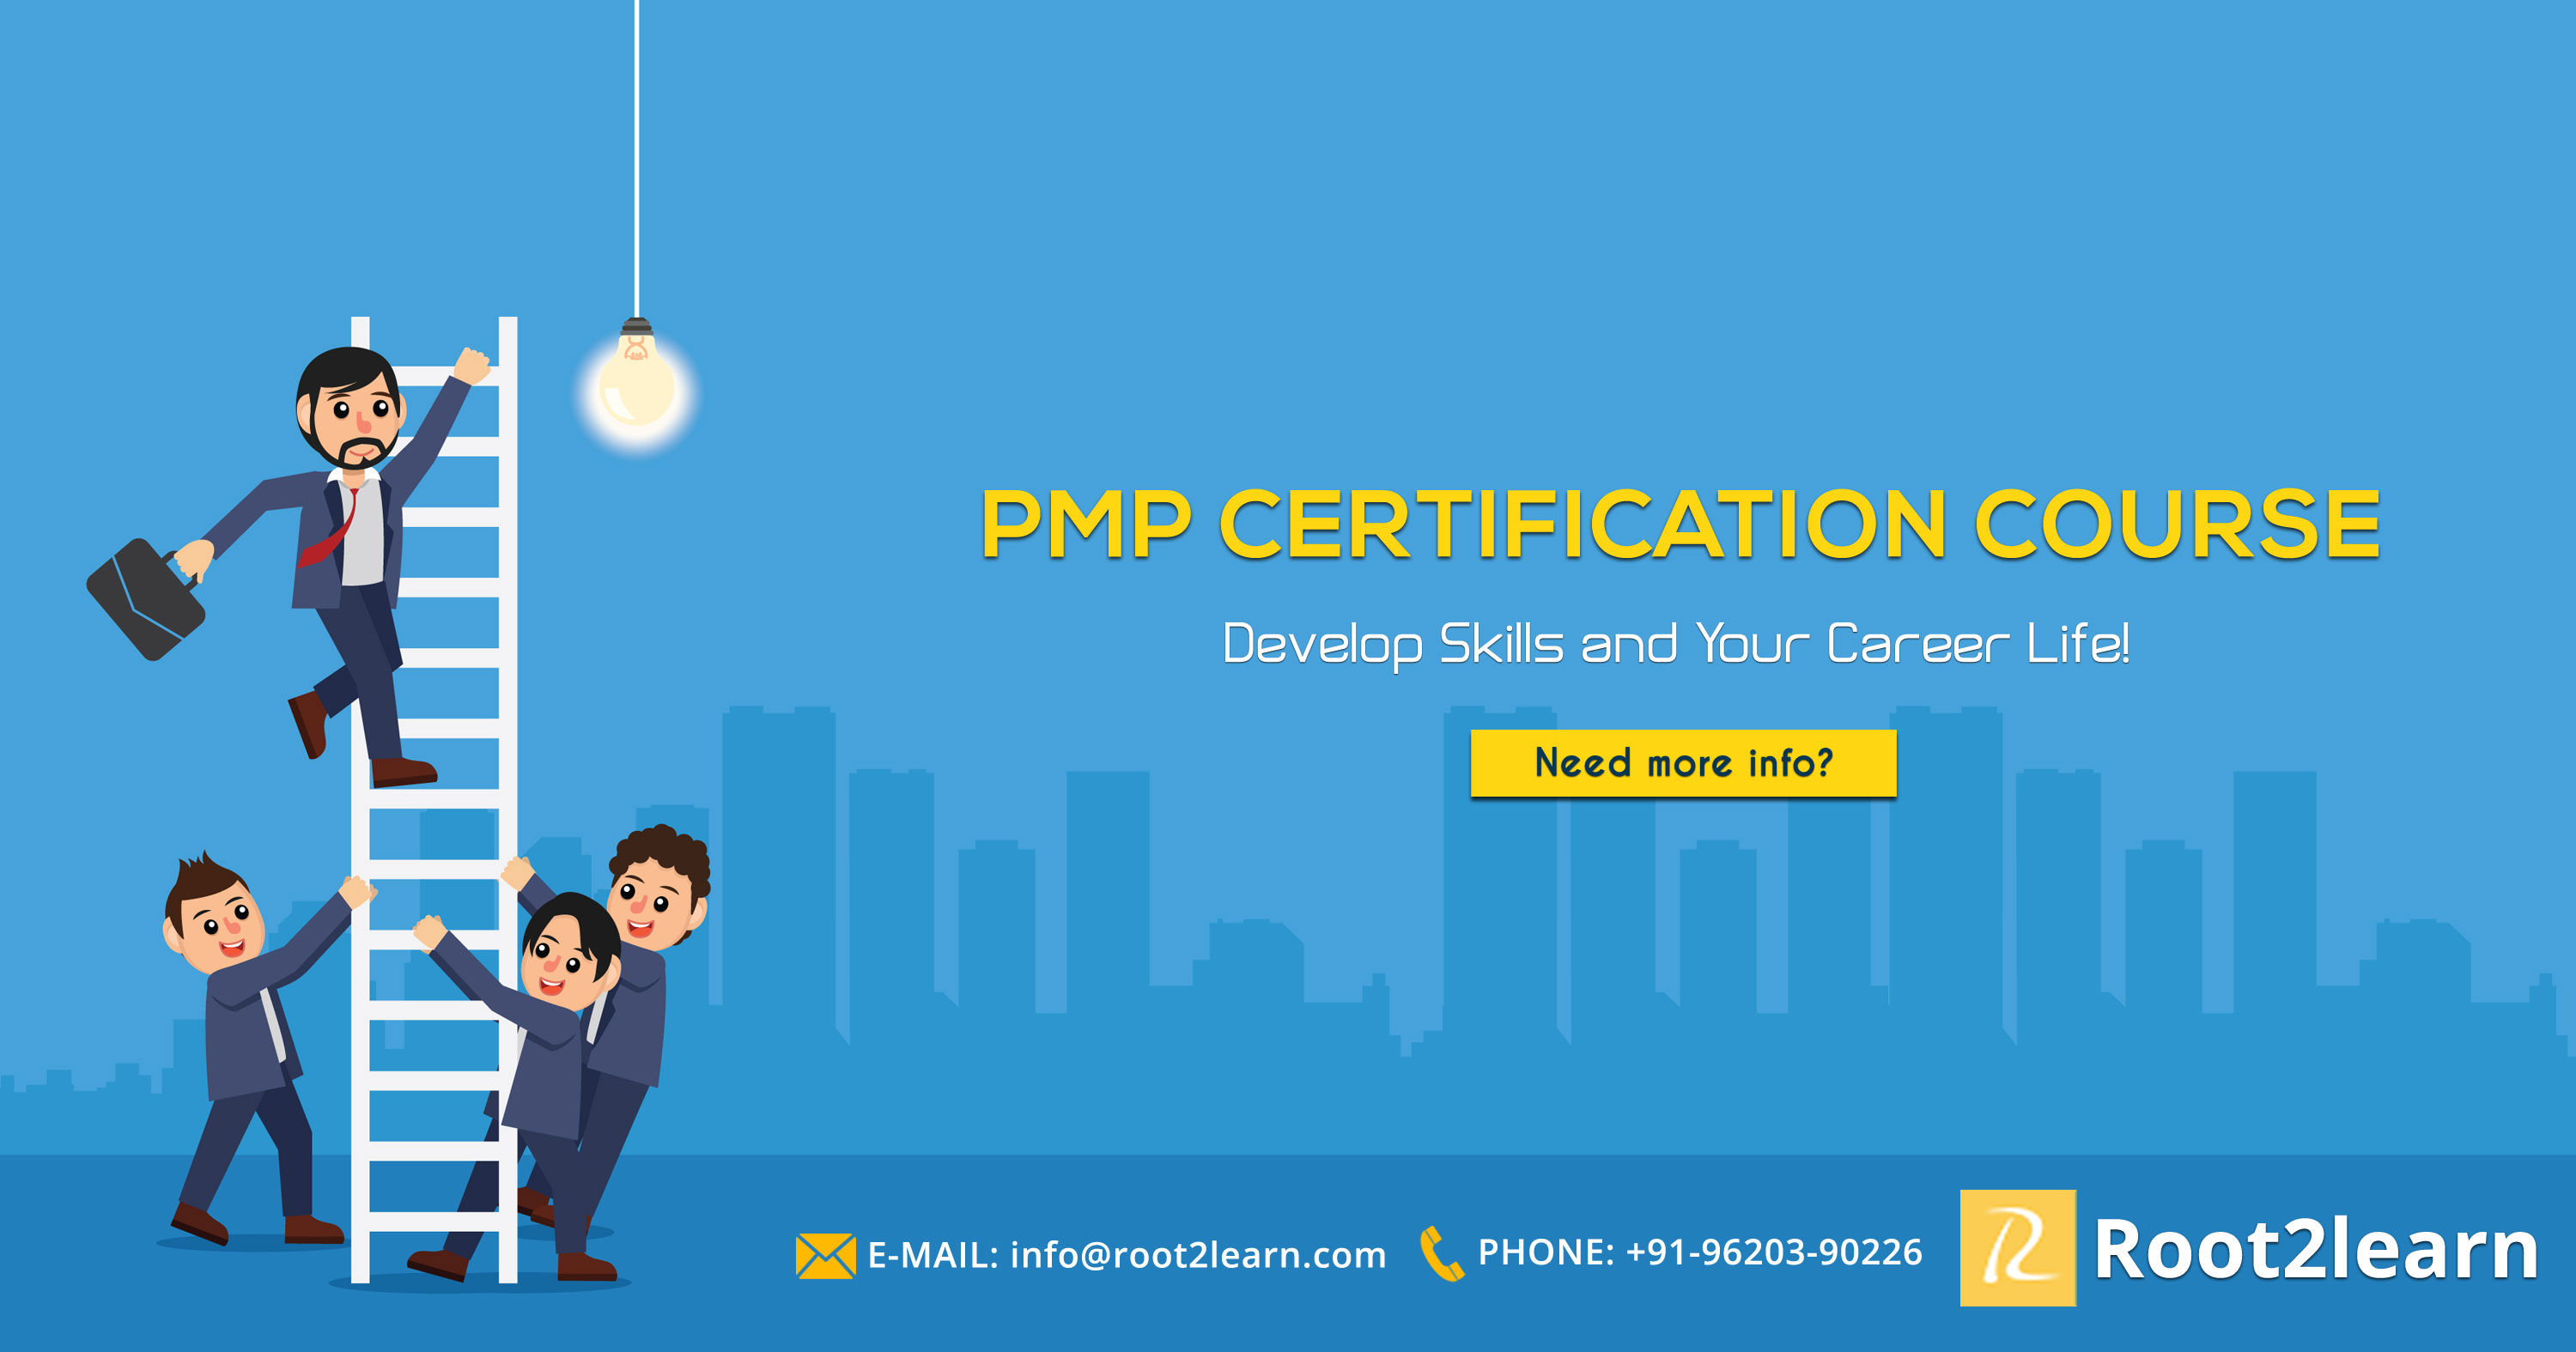 Pmp Certification Course To Develop Skills And Career Life Root2learn